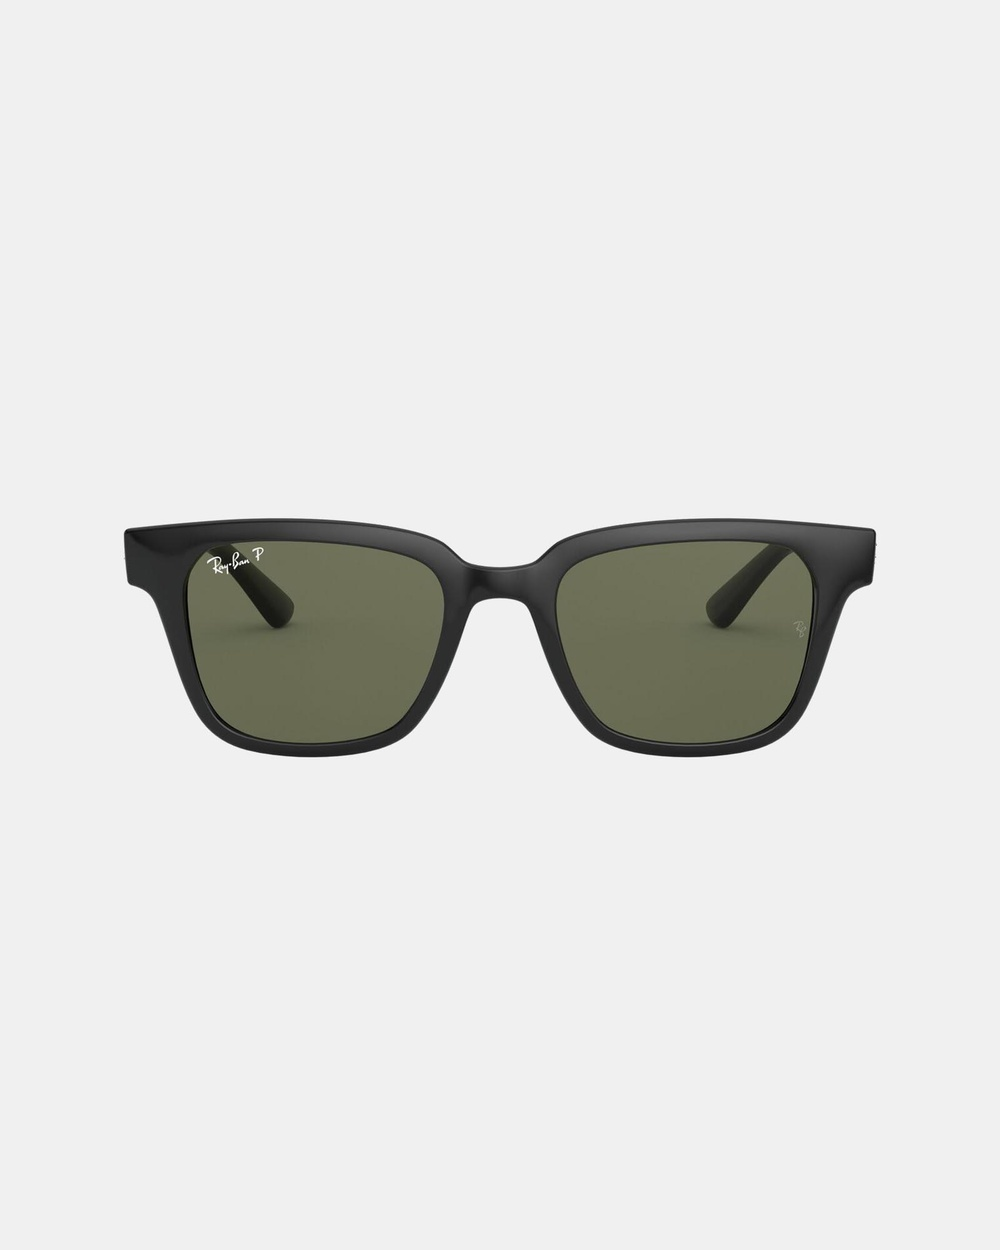 Ray-Ban Injected Sunglasses Unisex Square Black